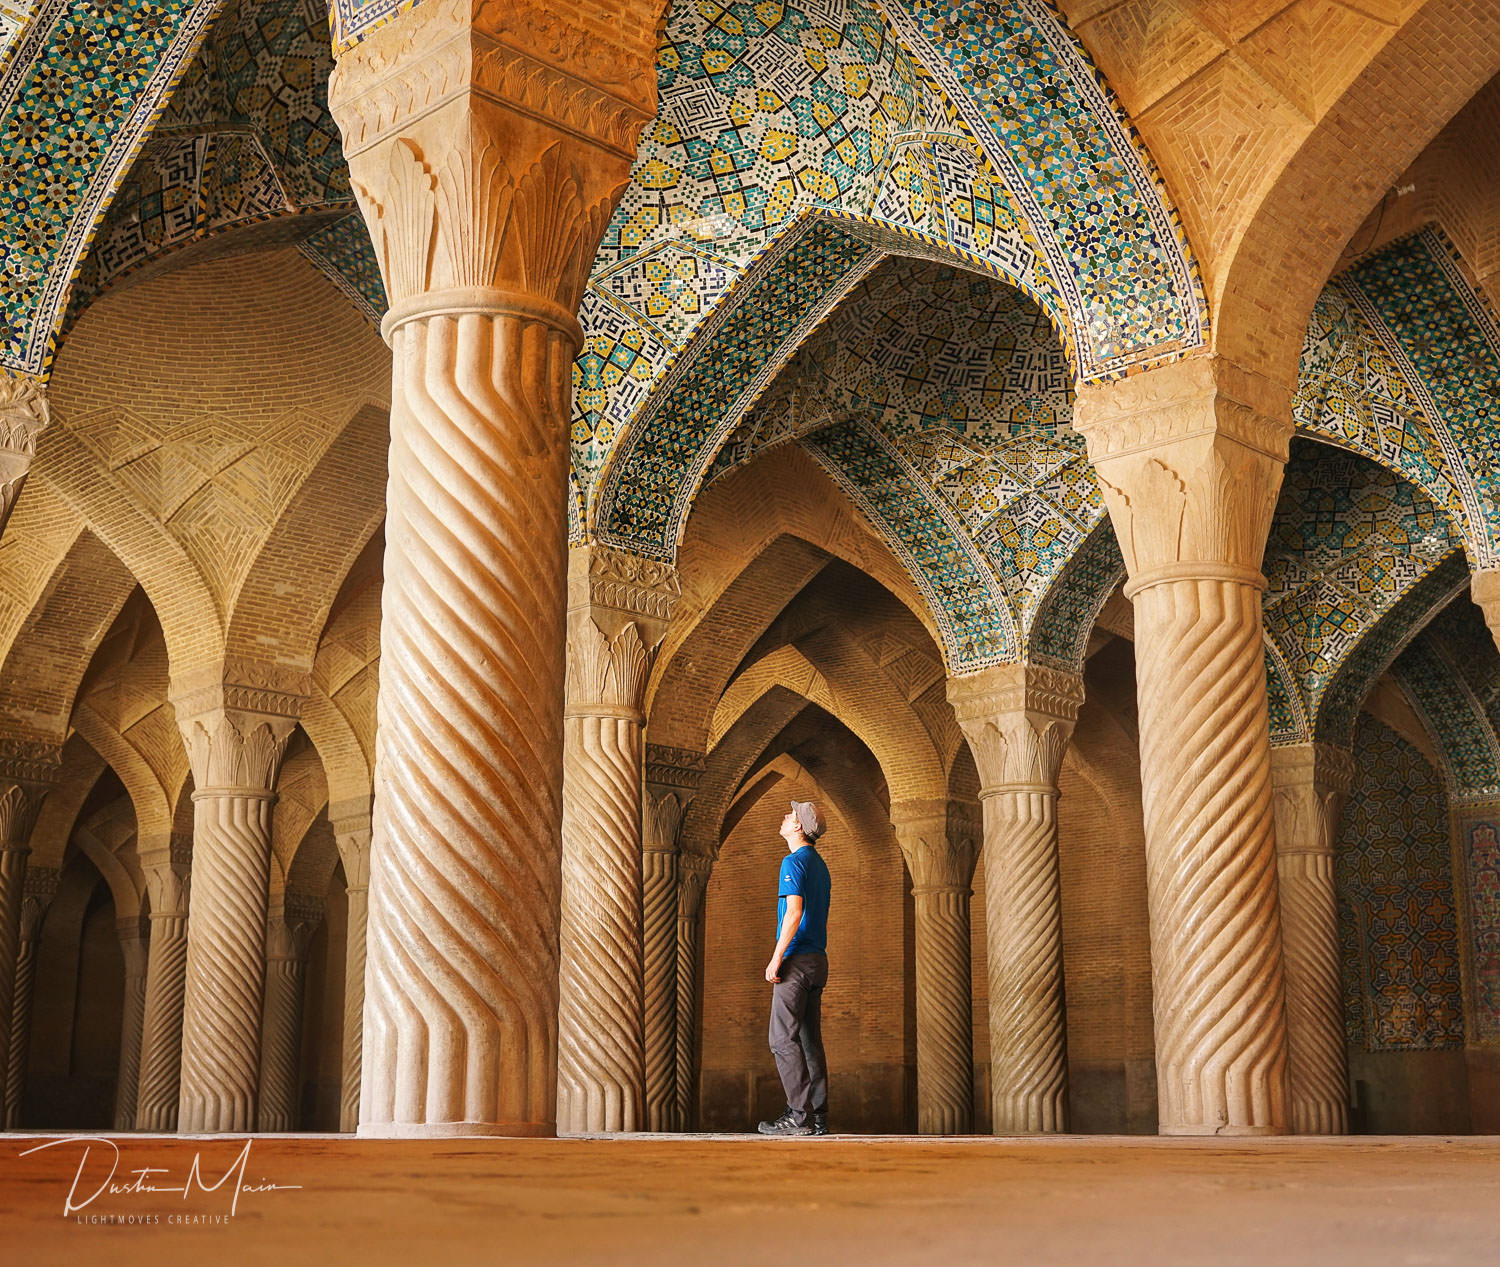 Self Portrait @ Vakil Mosque - Shiraz, Iran  © Dustin Main 2017